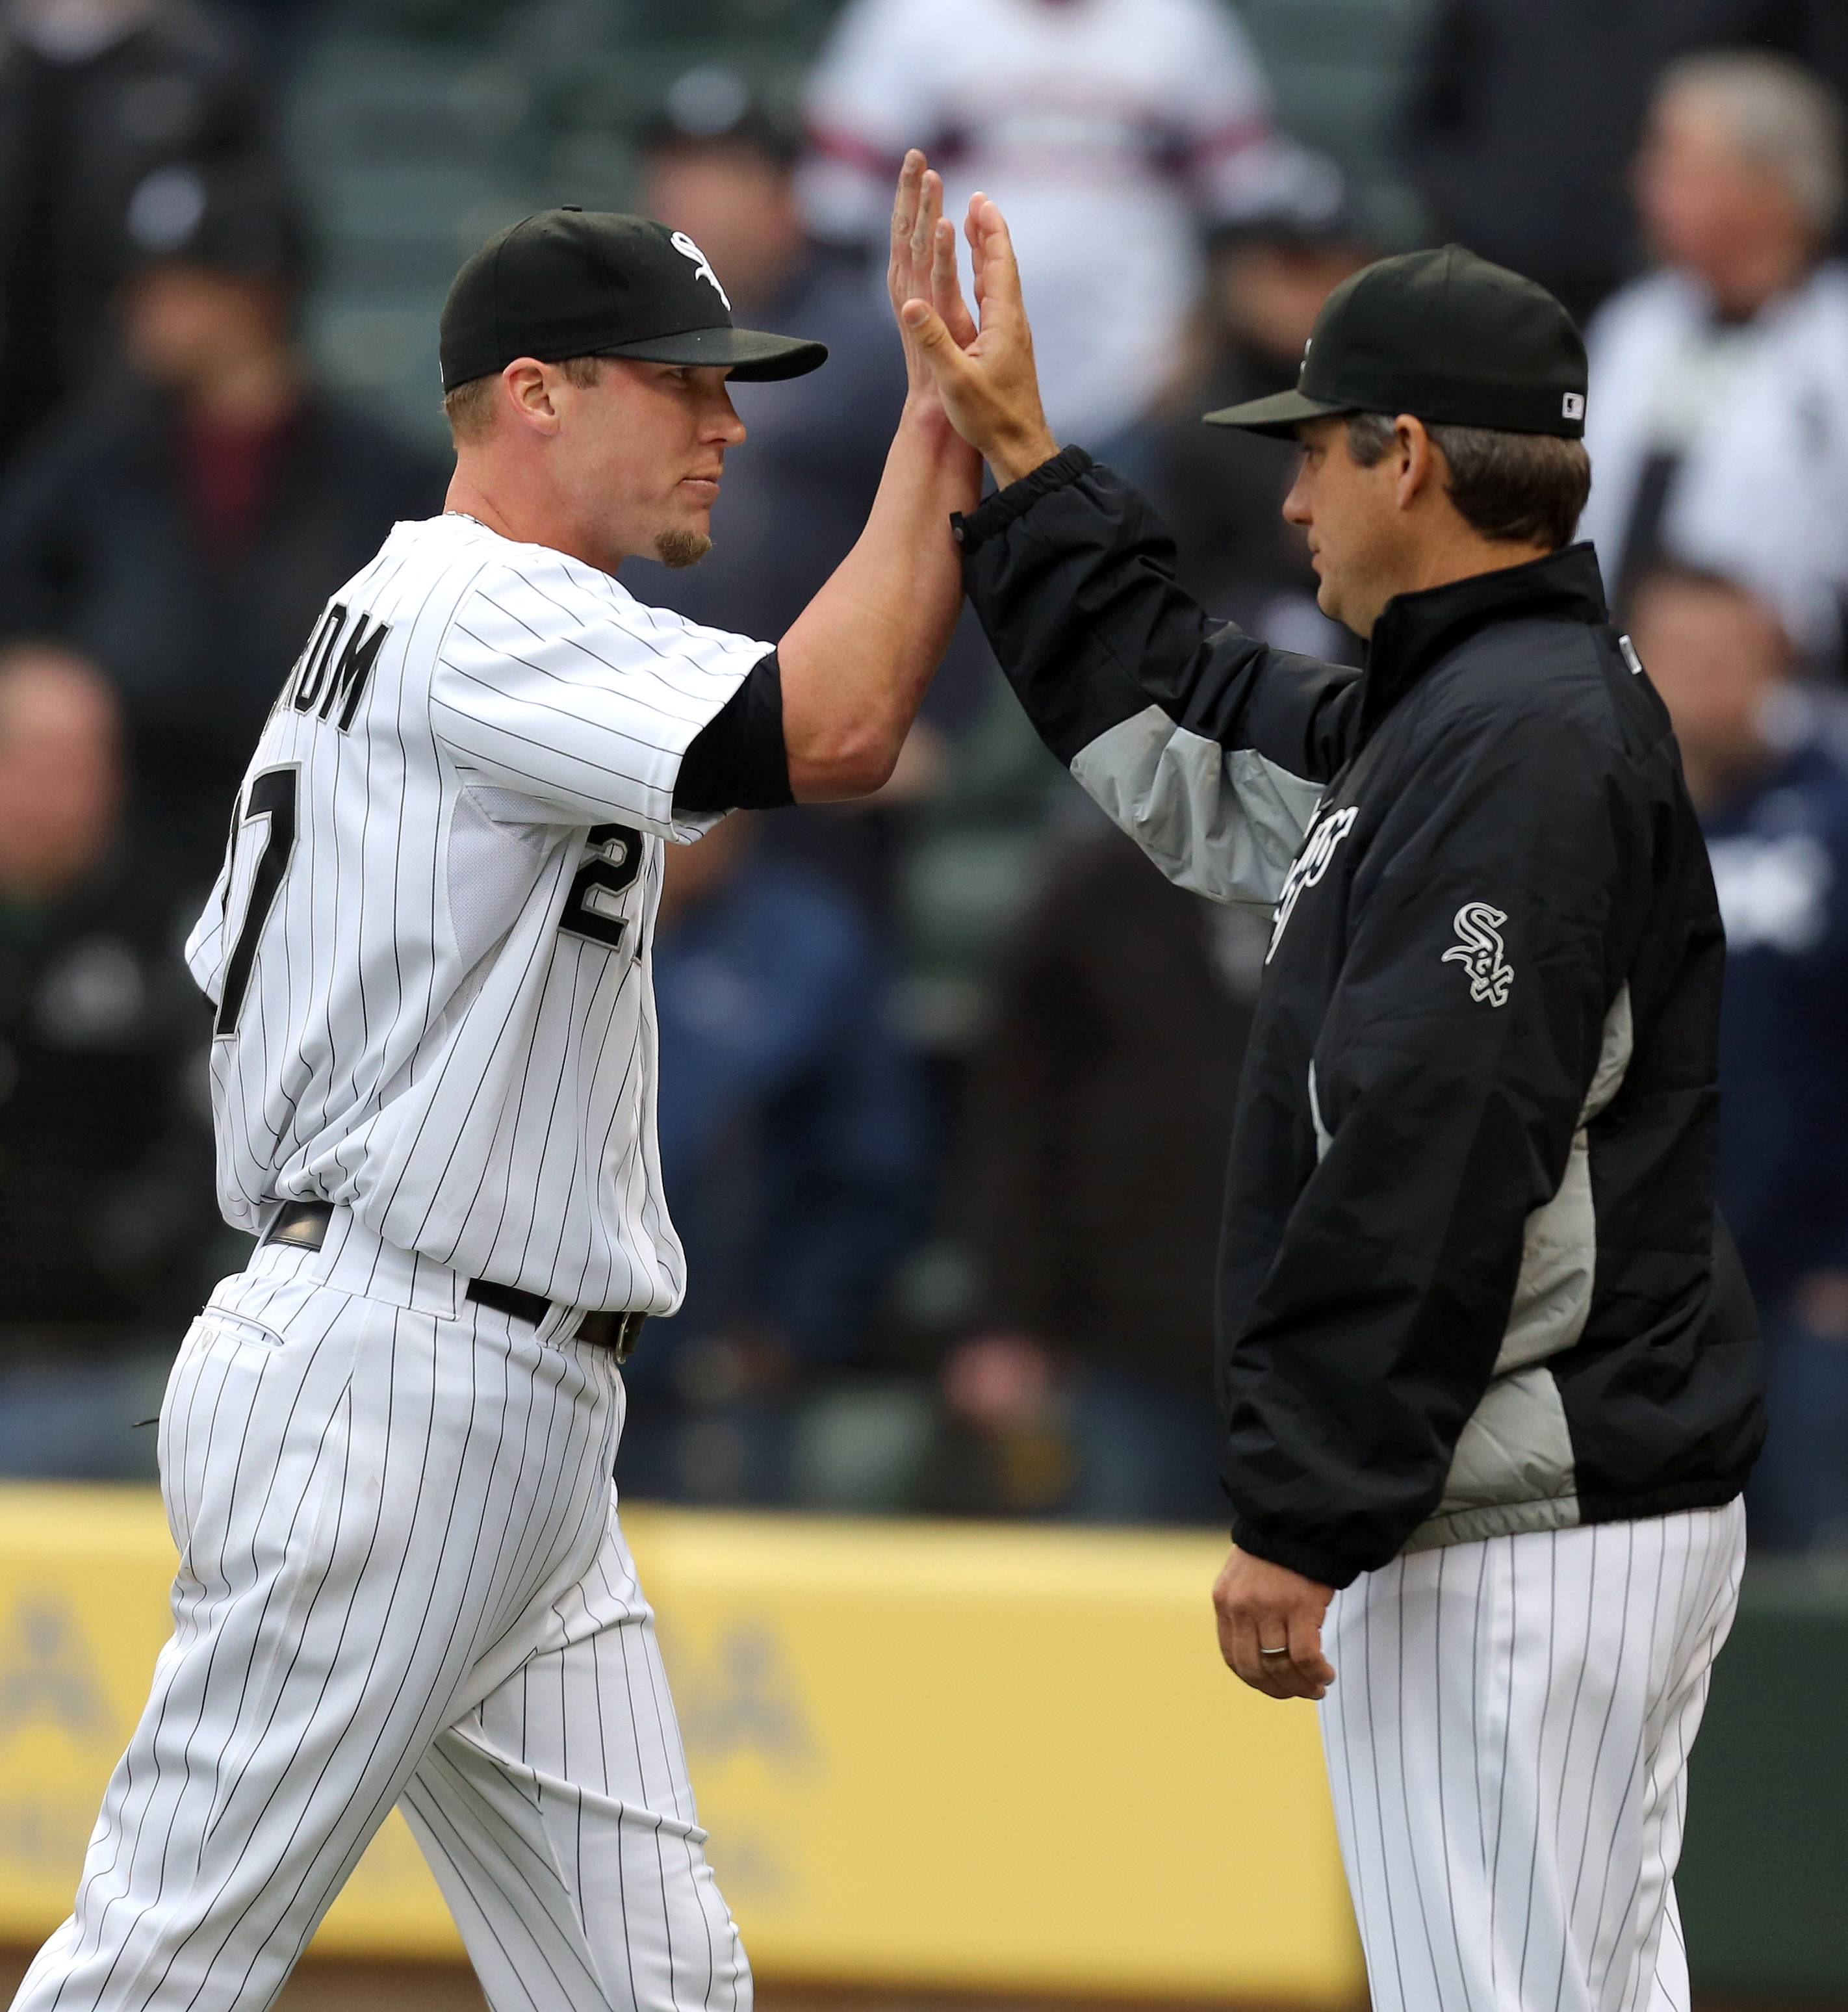 White Sox relief pitcher Matt Lindstrom, left, high fives Chicago White Sox manager Robin Ventura after getting the save in their 5-3 win during the White Sox home opener against the Minnesota twins Monday at US Cellular Field.